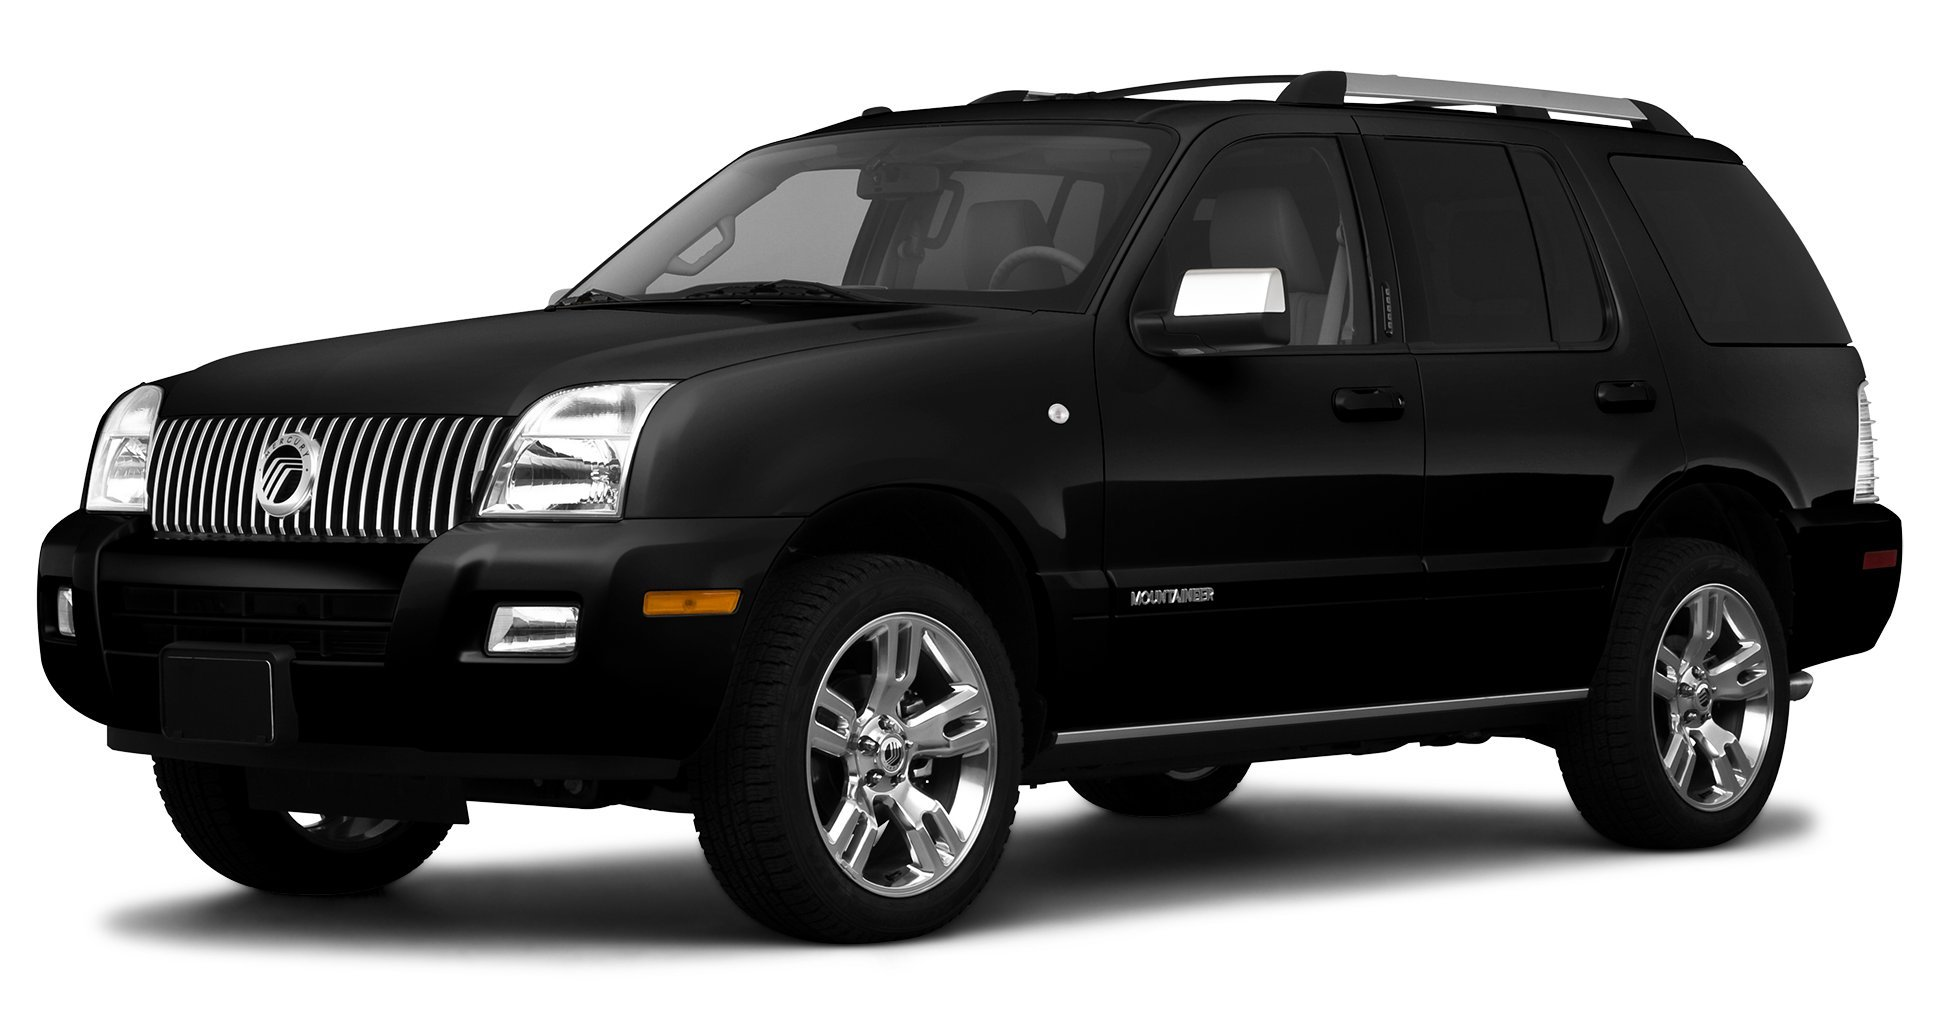 2010 mercury mountaineer reviews images and. Black Bedroom Furniture Sets. Home Design Ideas